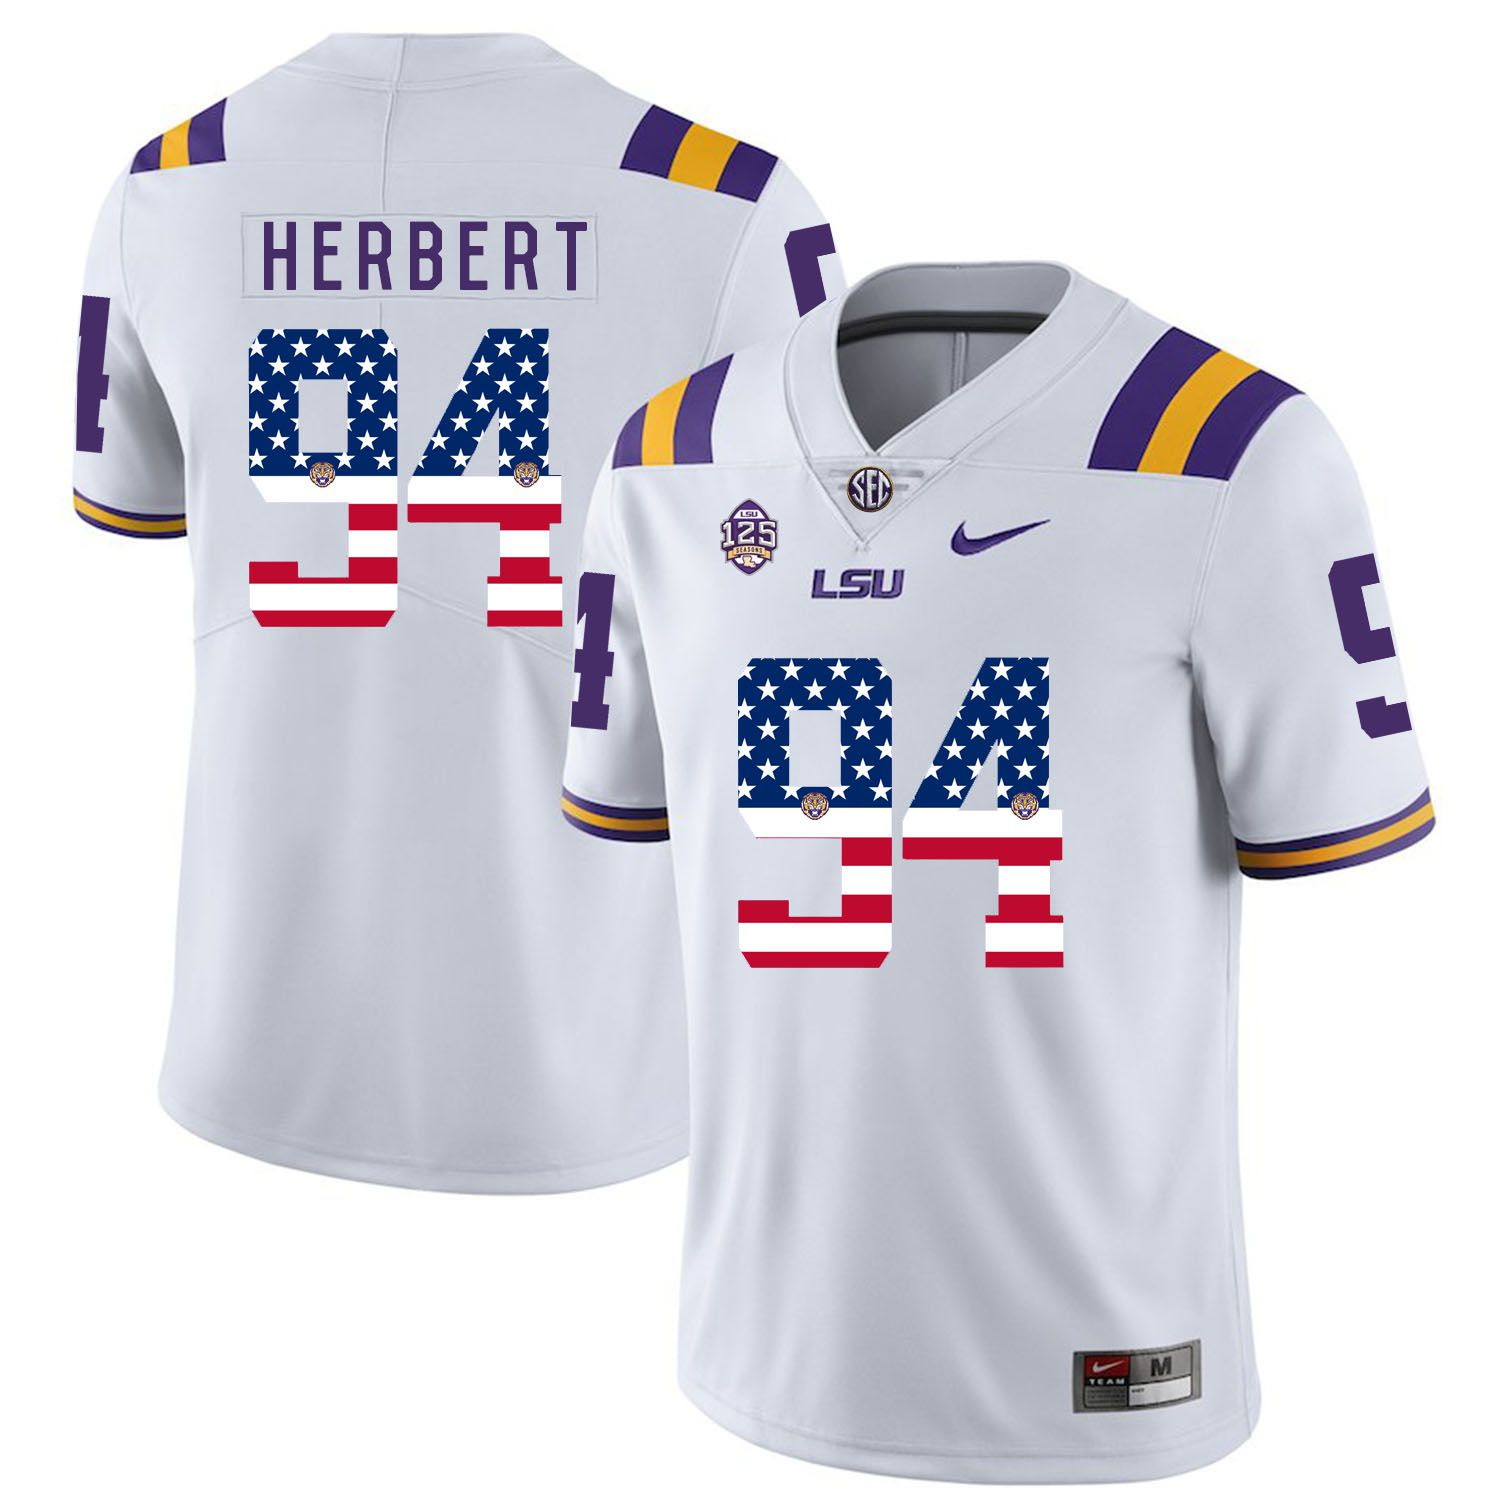 Men LSU Tigers 94 Herbert White Flag Customized NCAA Jerseys